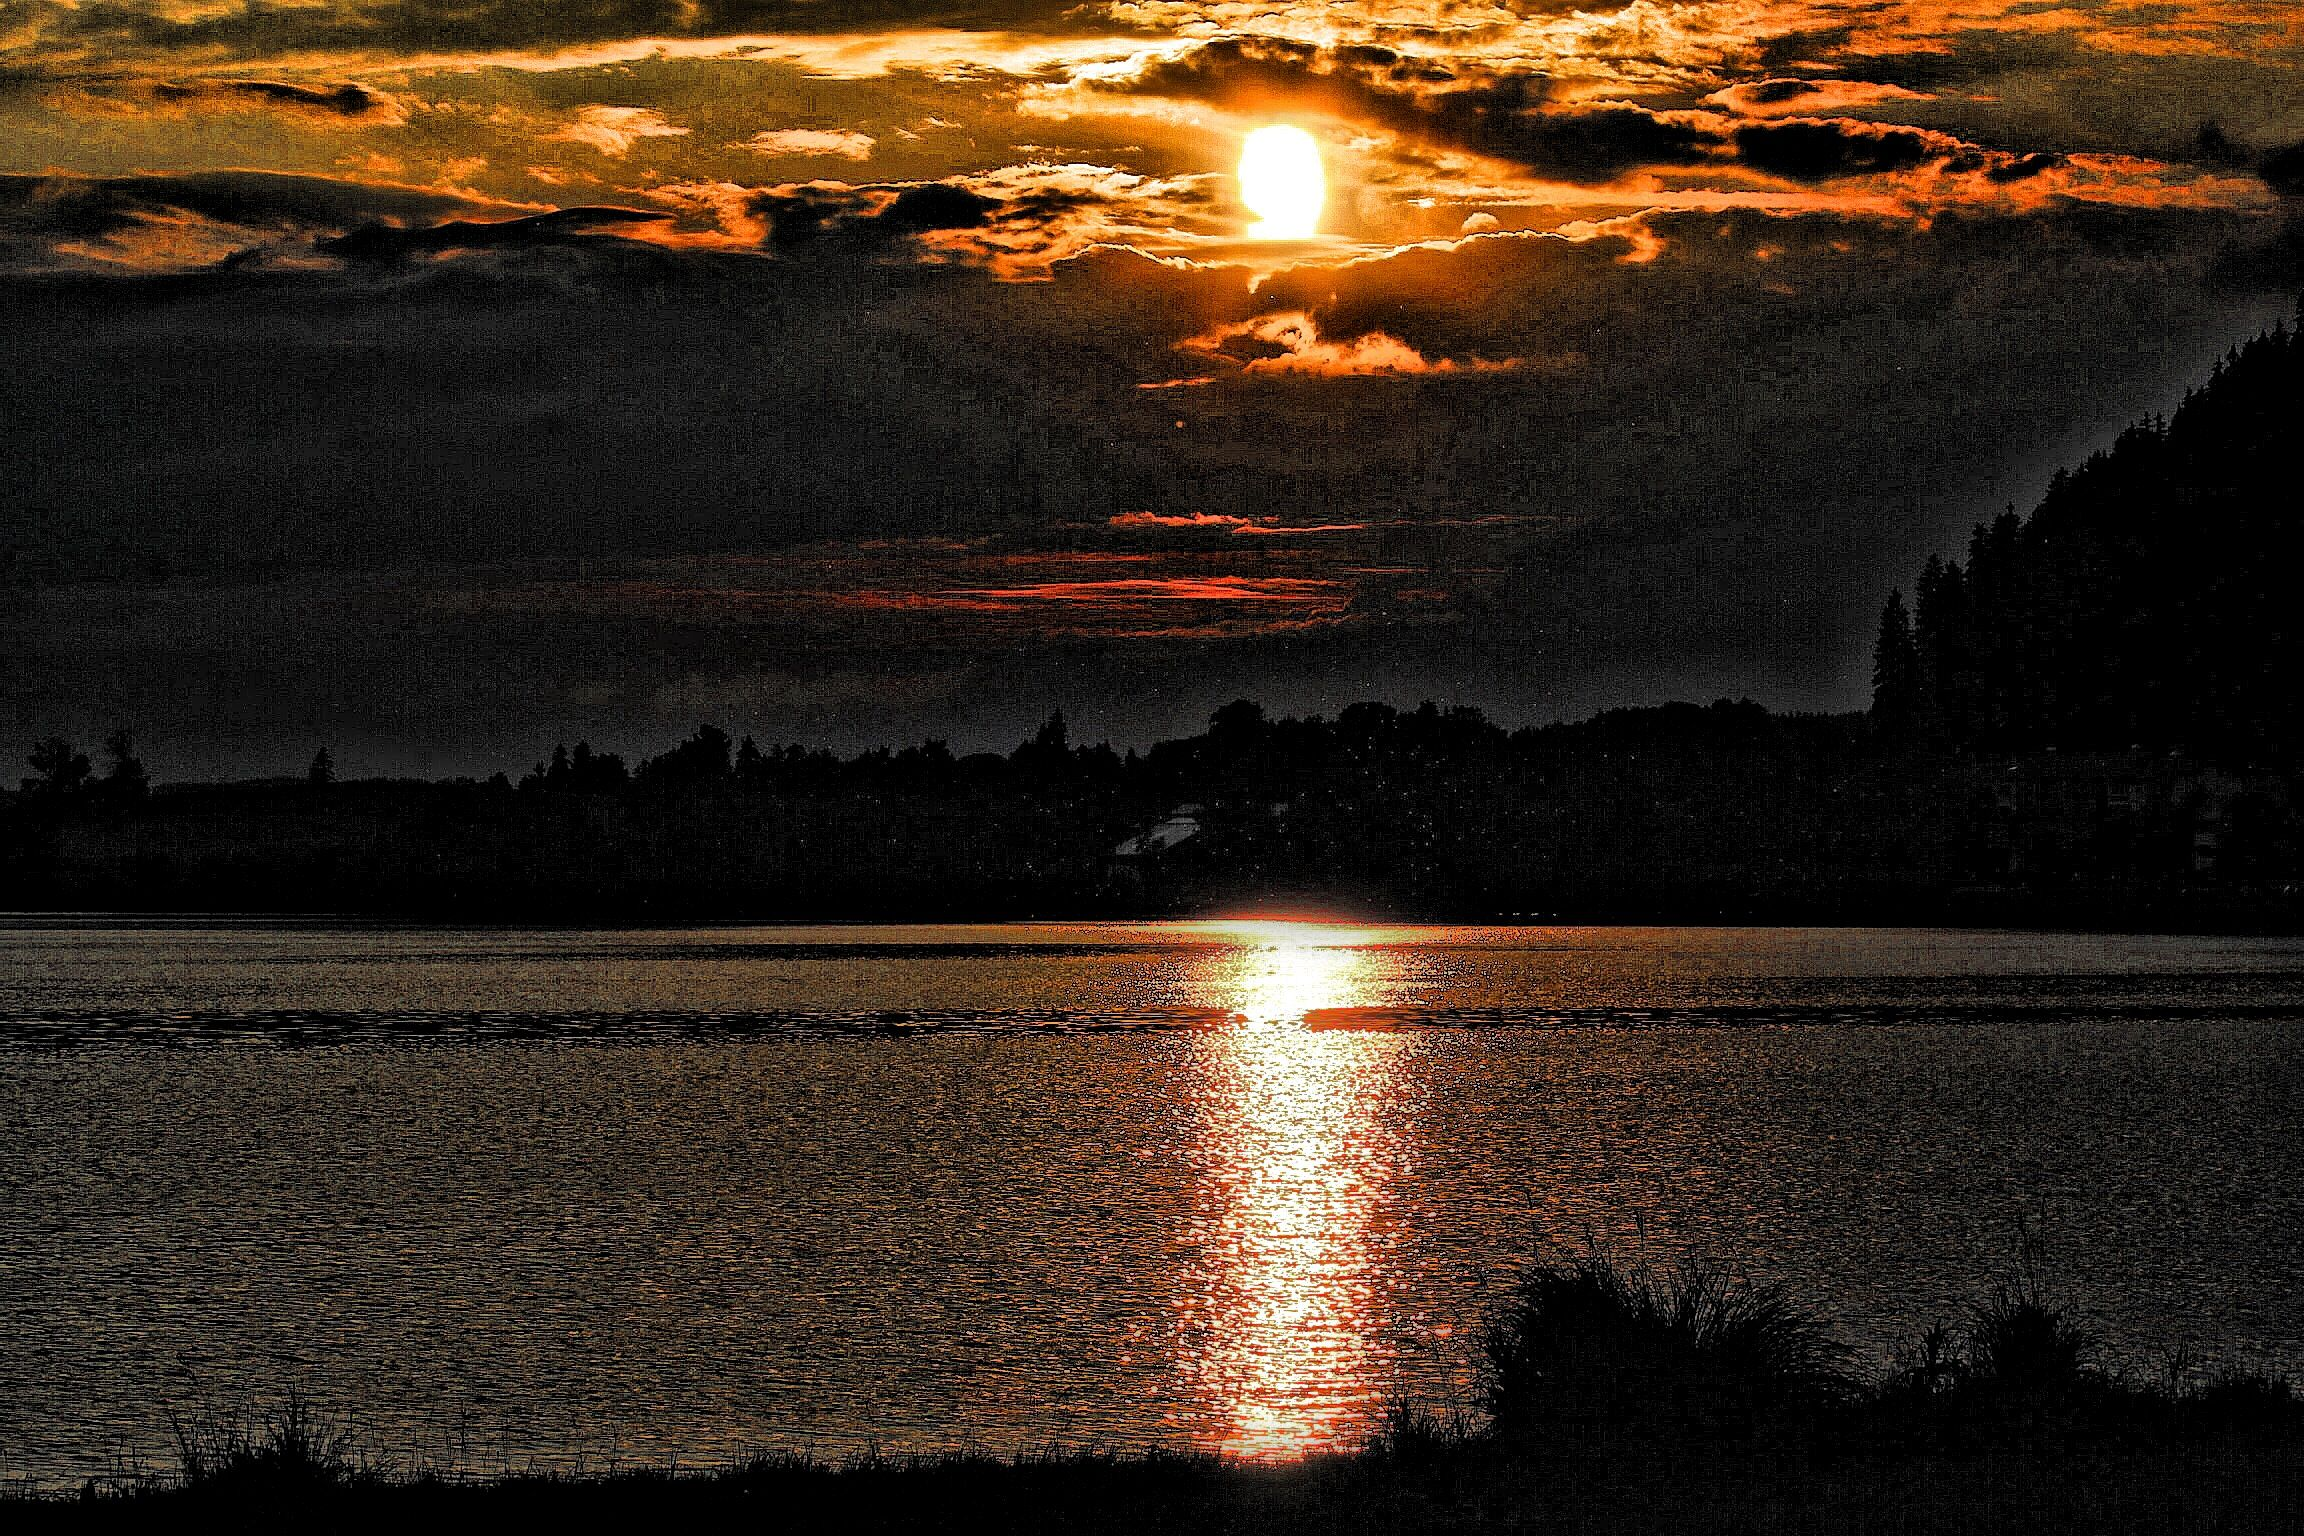 Sunset on Hopfen Lake